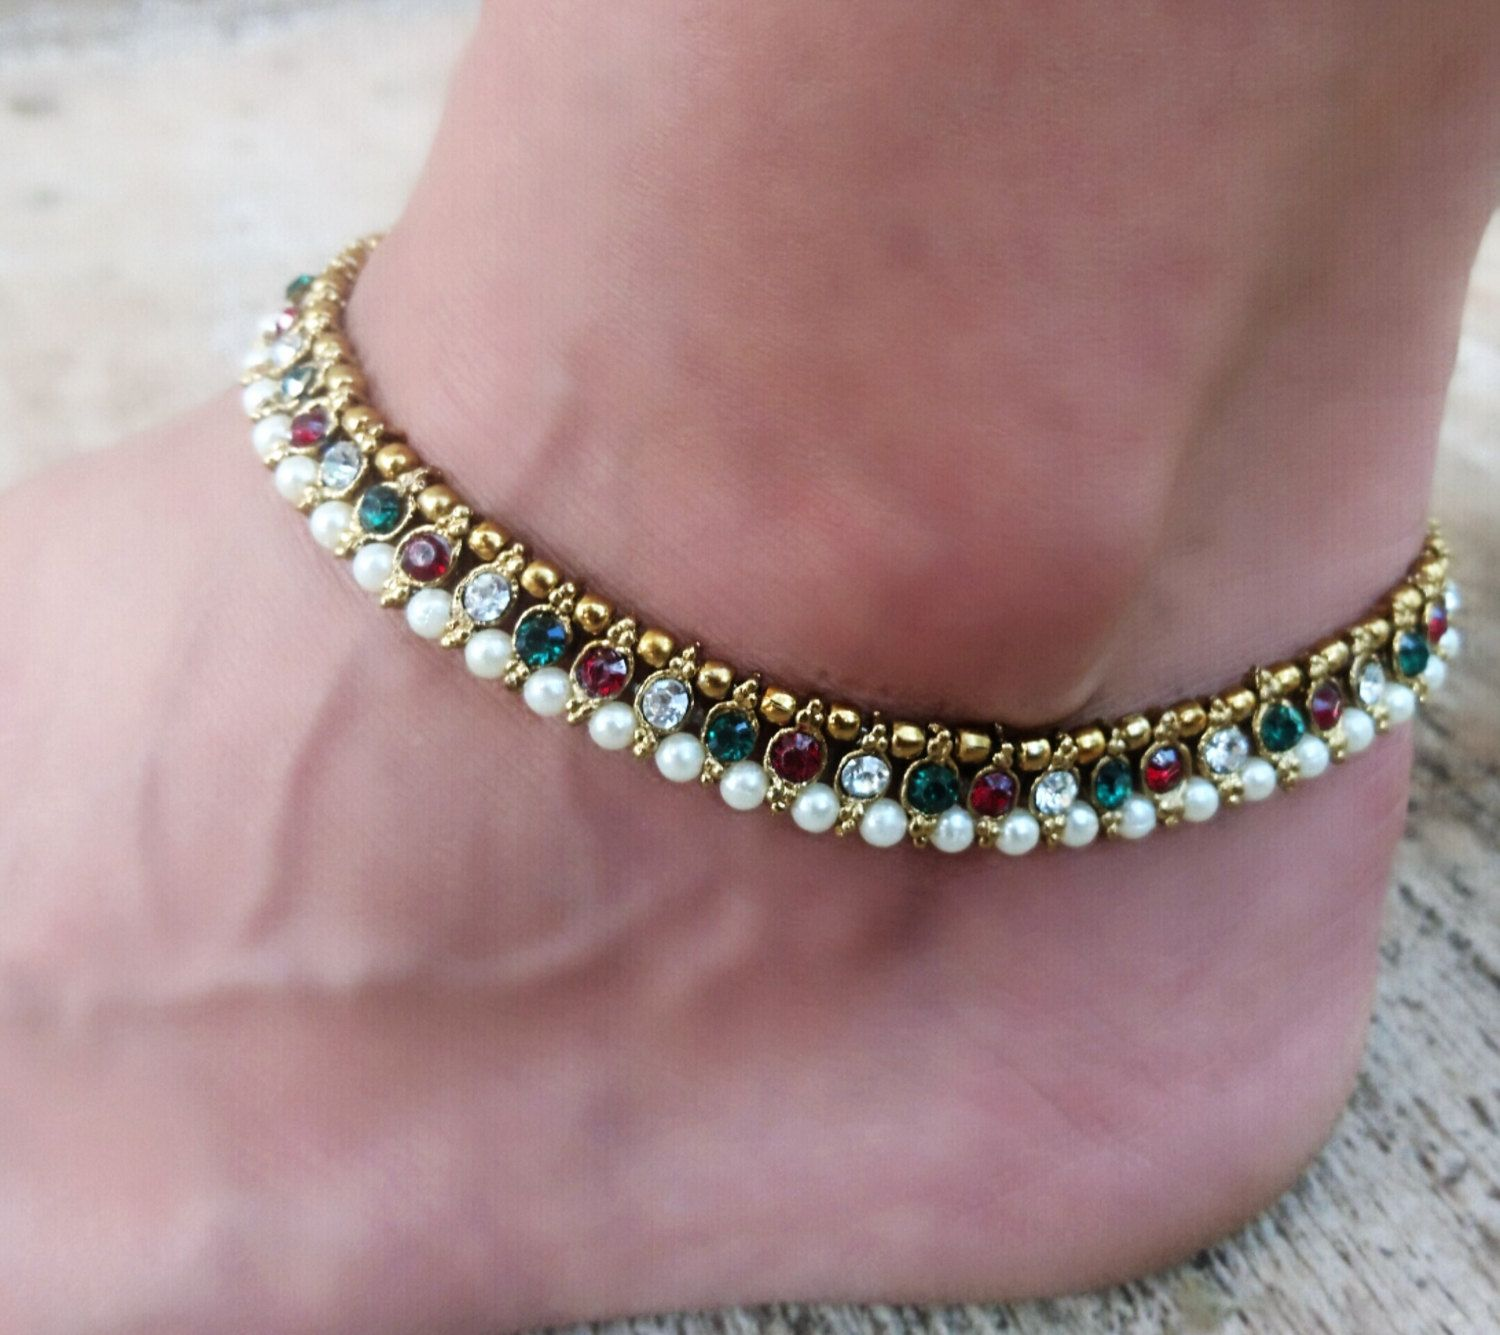 jgemma j designer silver bracelets product category anklet beaded gemma bracelet loveheart